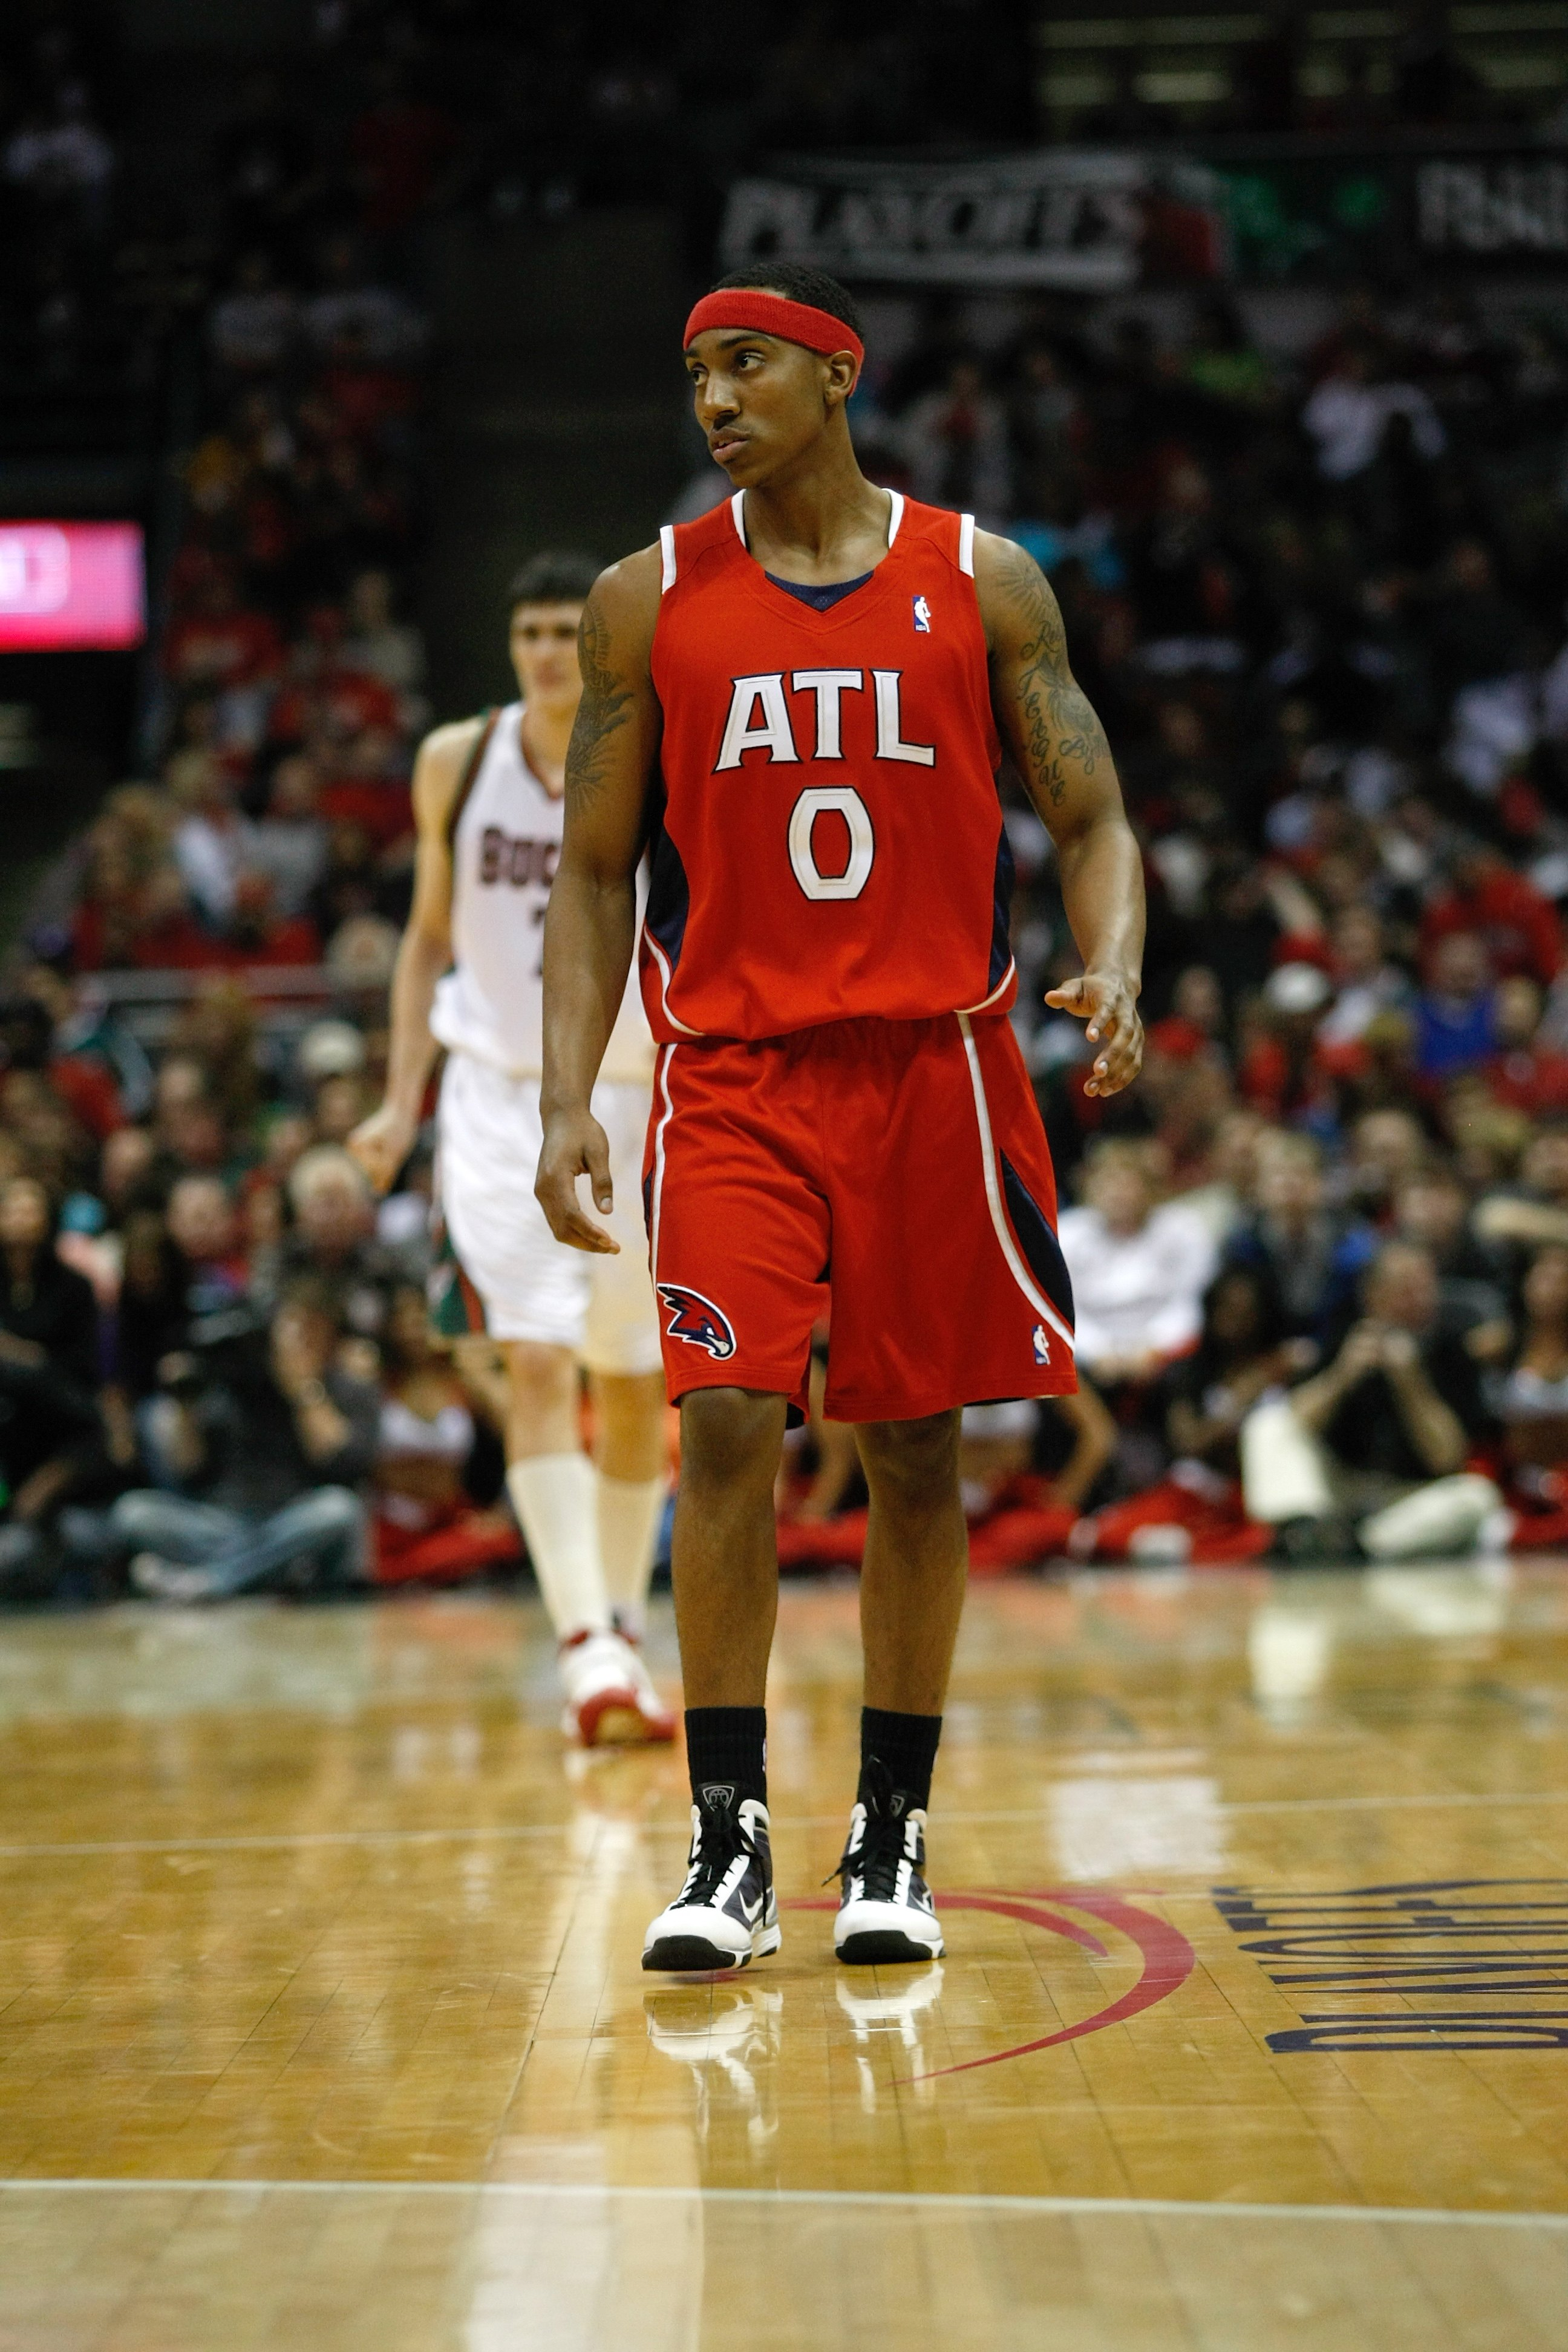 MILWAUKEE, WI - APRIL 24: Jeff Teague #0 of the Atlanta Hawks walks on the court against the Milwaukee Bucks during Game Three of Eastern Conference Quarterfinals of the 2010 NBA Playoffs at the Bradley Center on April 24, 2010 in Milwaukee, Wisconsin. Th